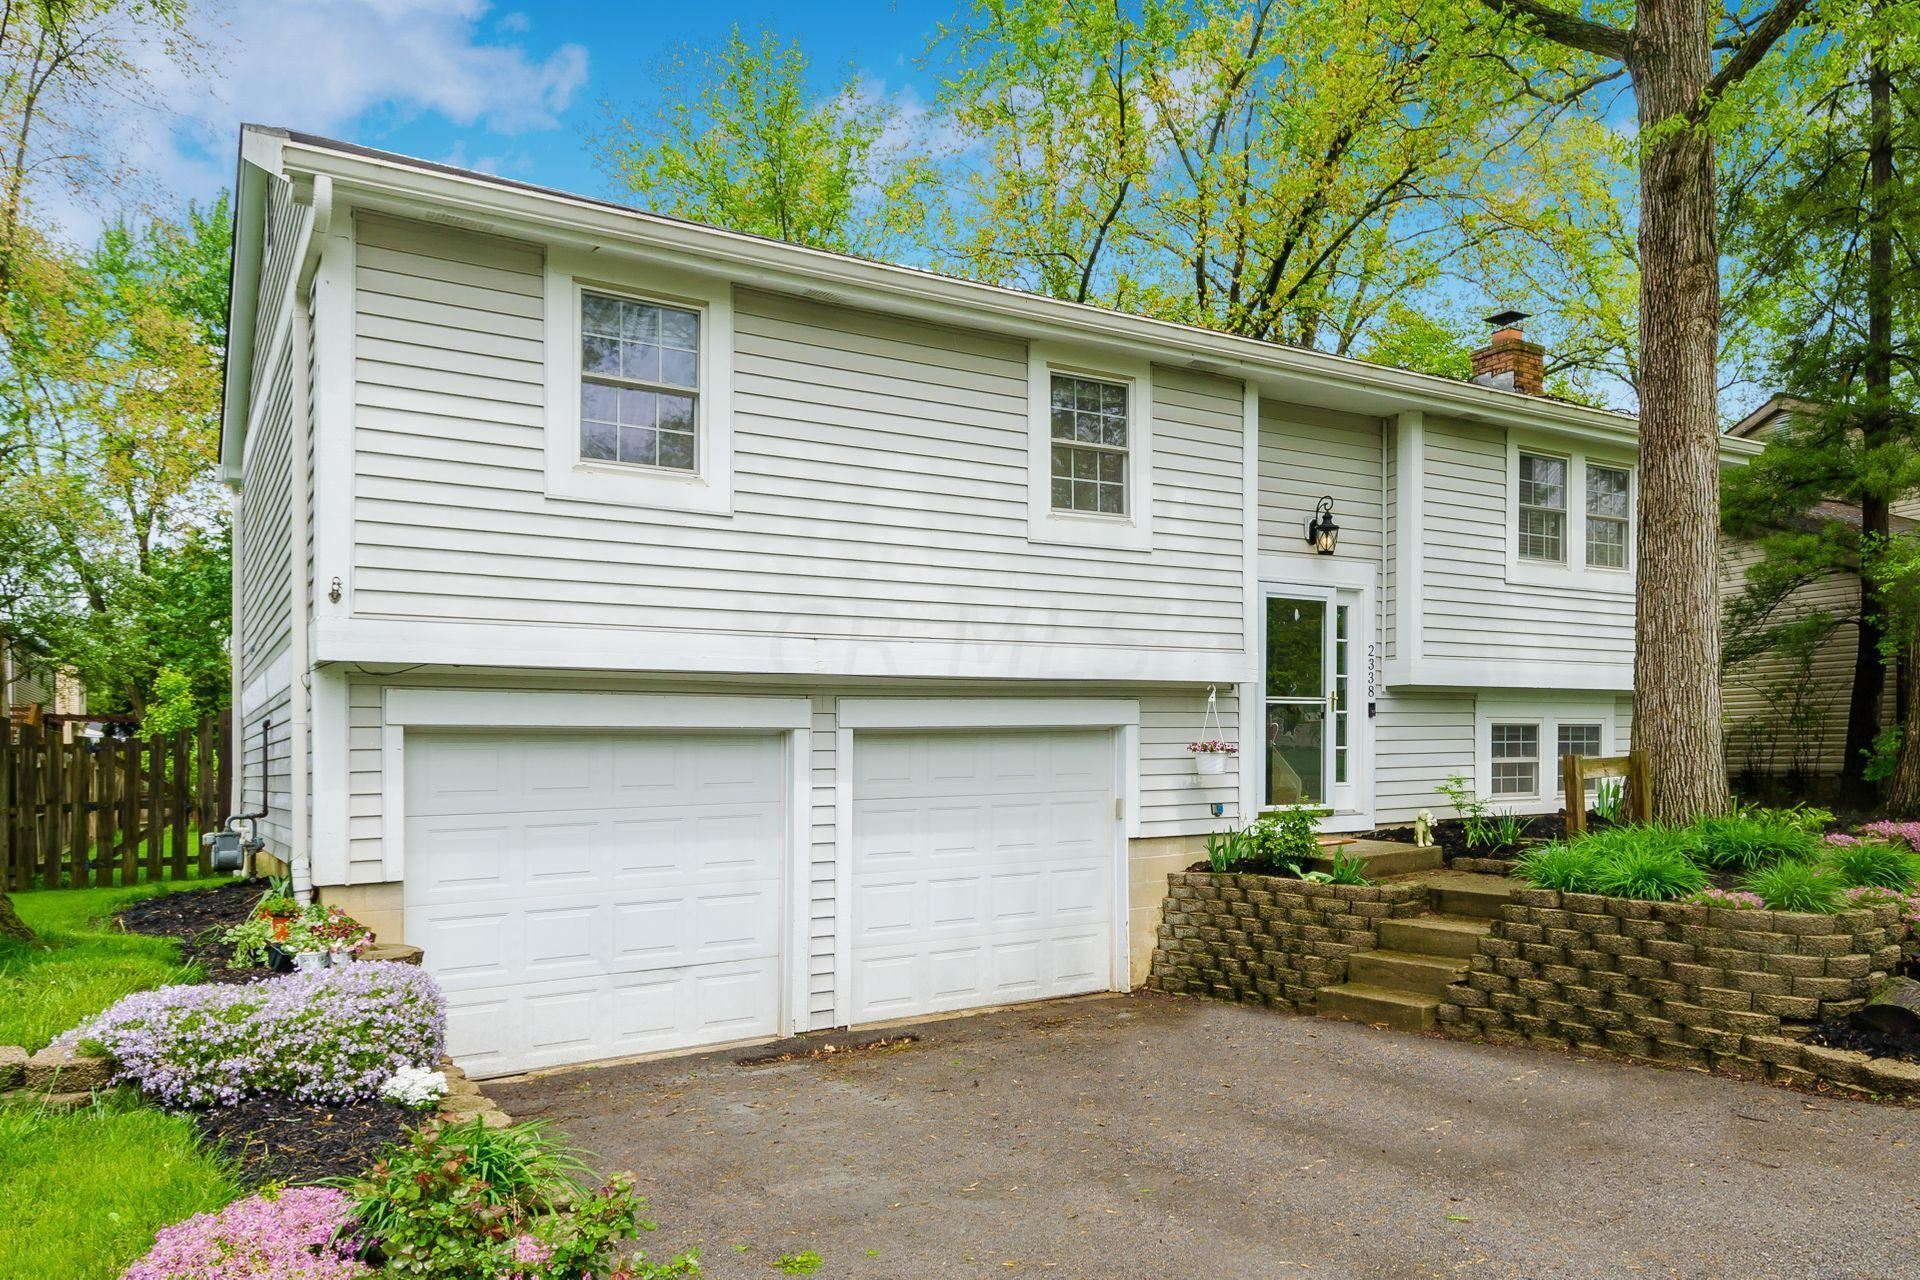 Photo of 2338 Hartsdale Drive, Powell, OH 43065 (MLS # 221014417)